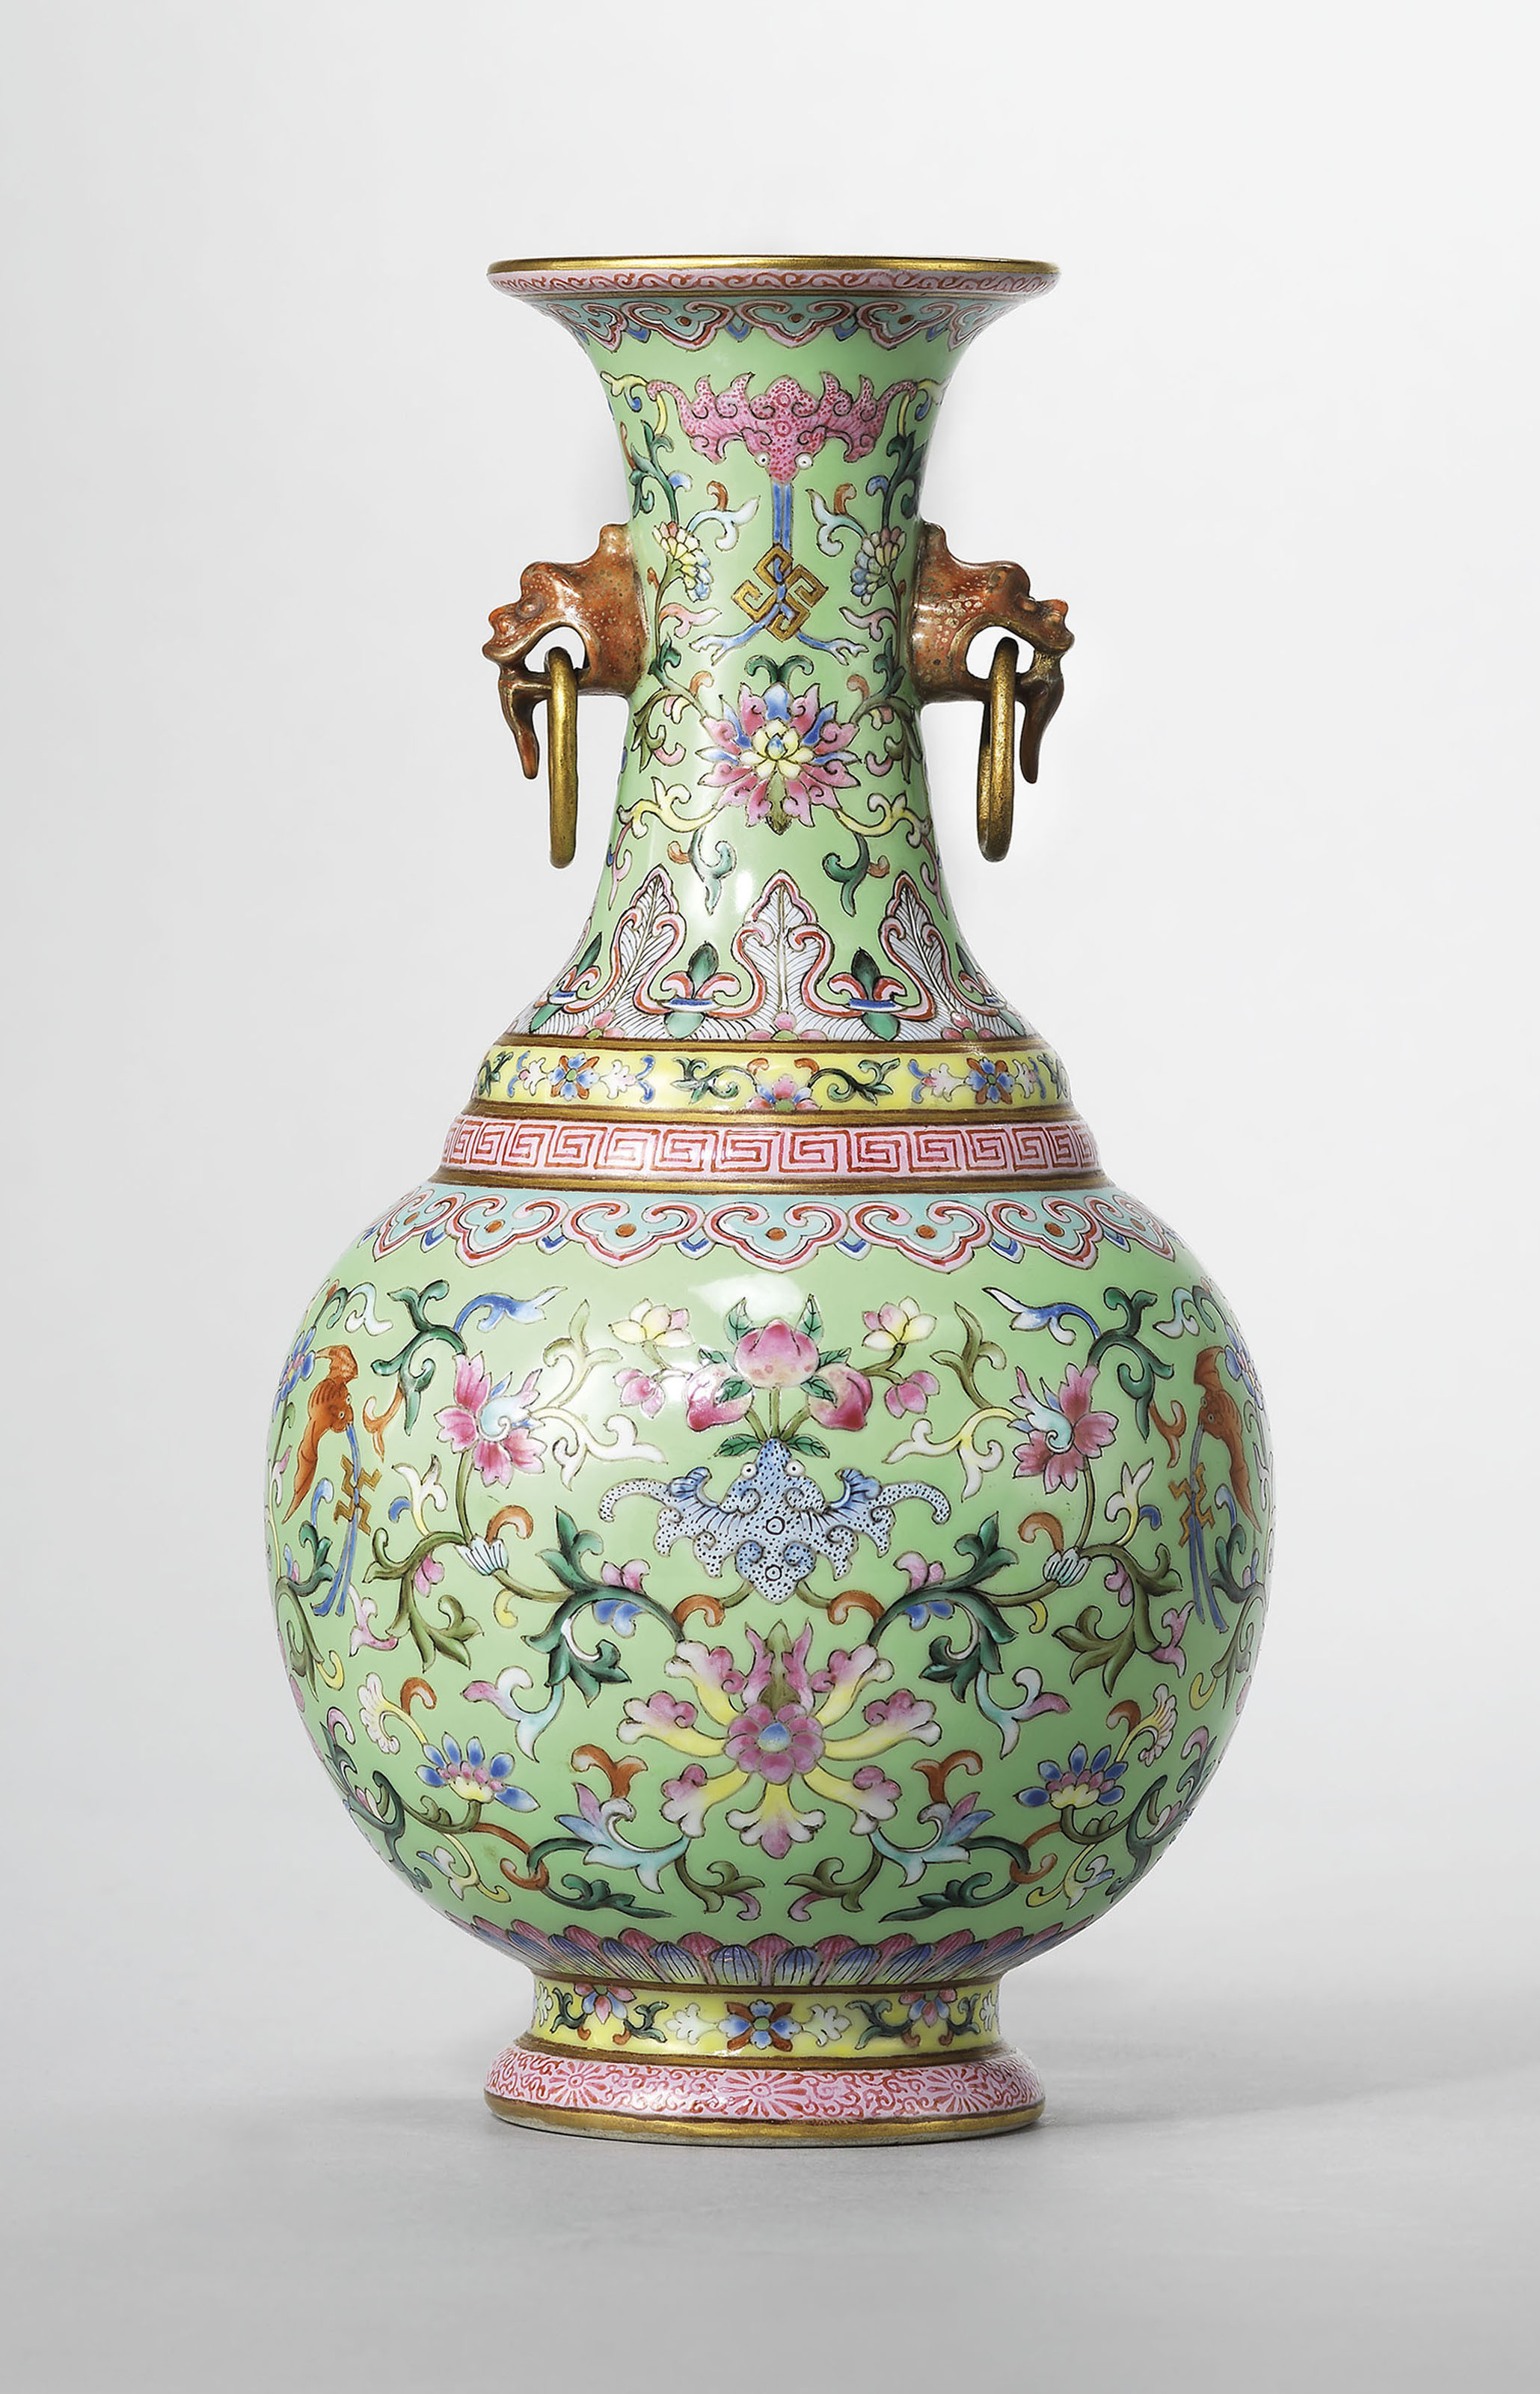 chinese vases history of 20 inspirational antique decorative glass vases inside a lime green ground famille rose twin handled vase jiaqing six character